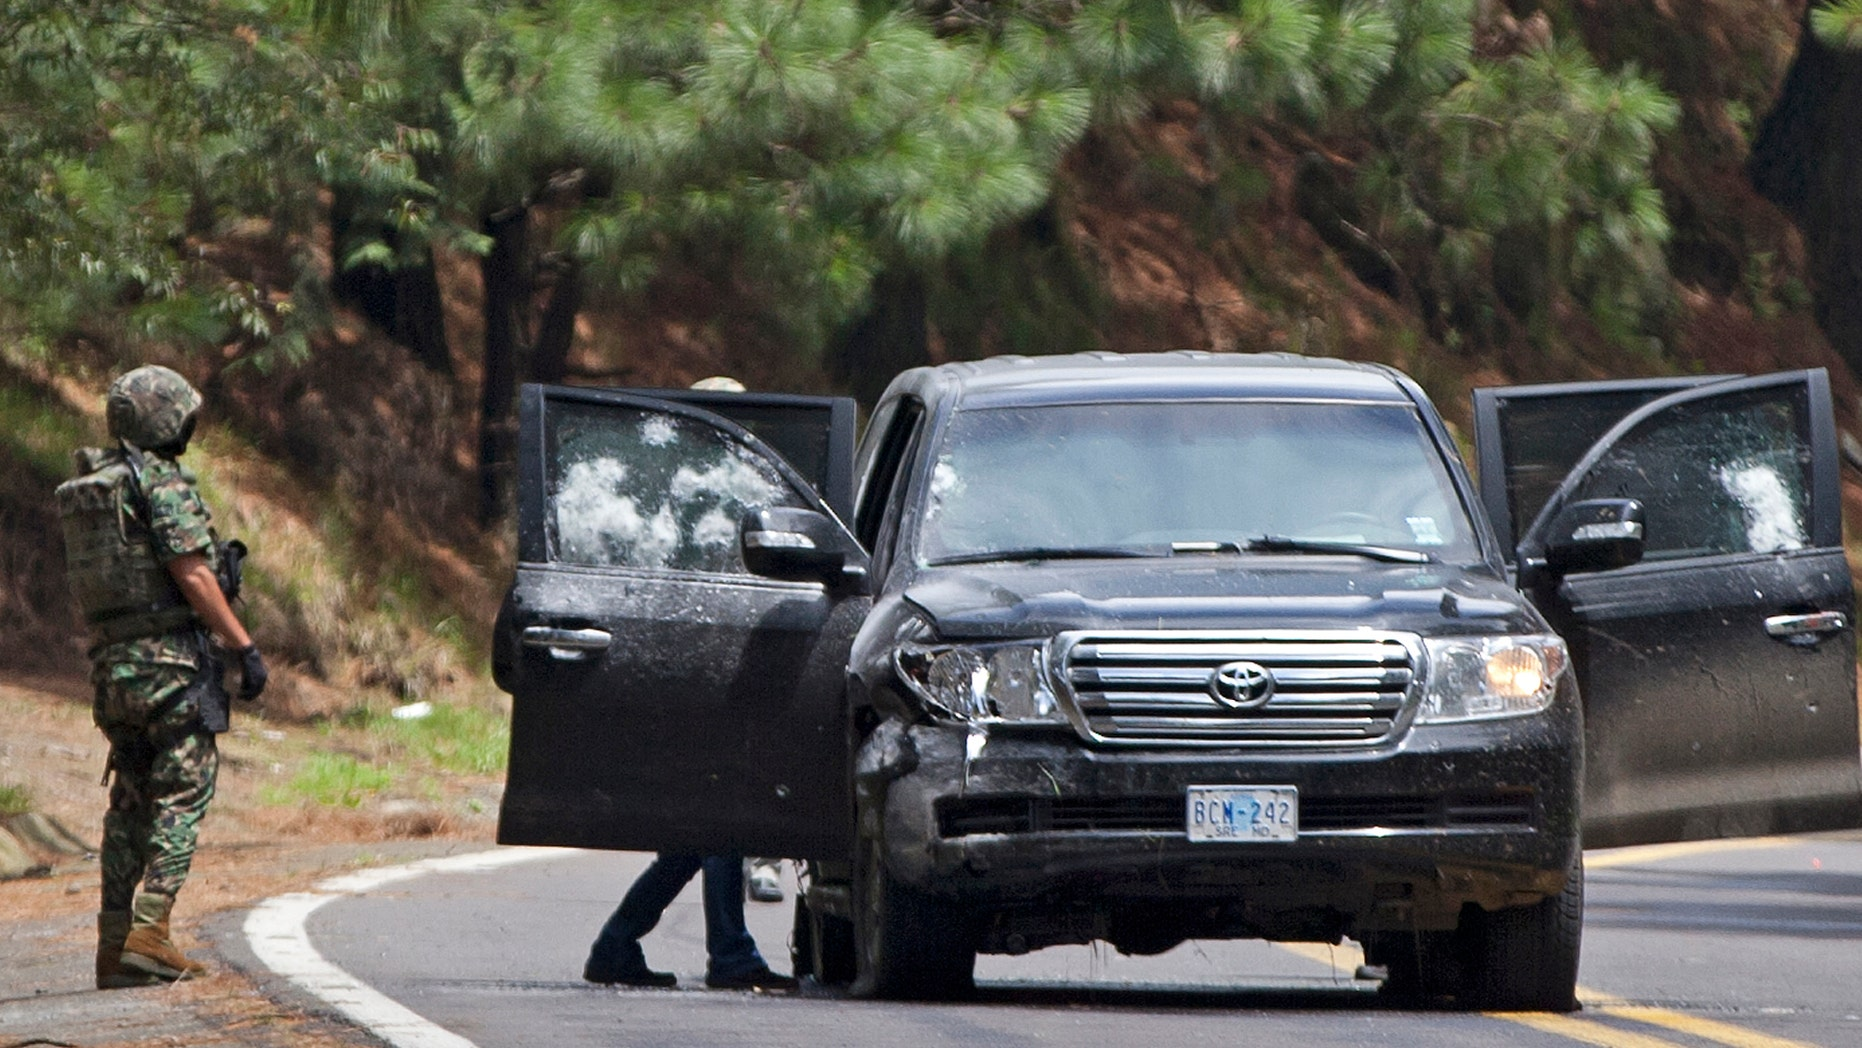 This Aug. 24, 2012, photo shows the armored U.S. embassy vehicle being checked by military personal after it was attacked by unknown assailants on the highway leading to the city of Cuernavaca, Mexico.